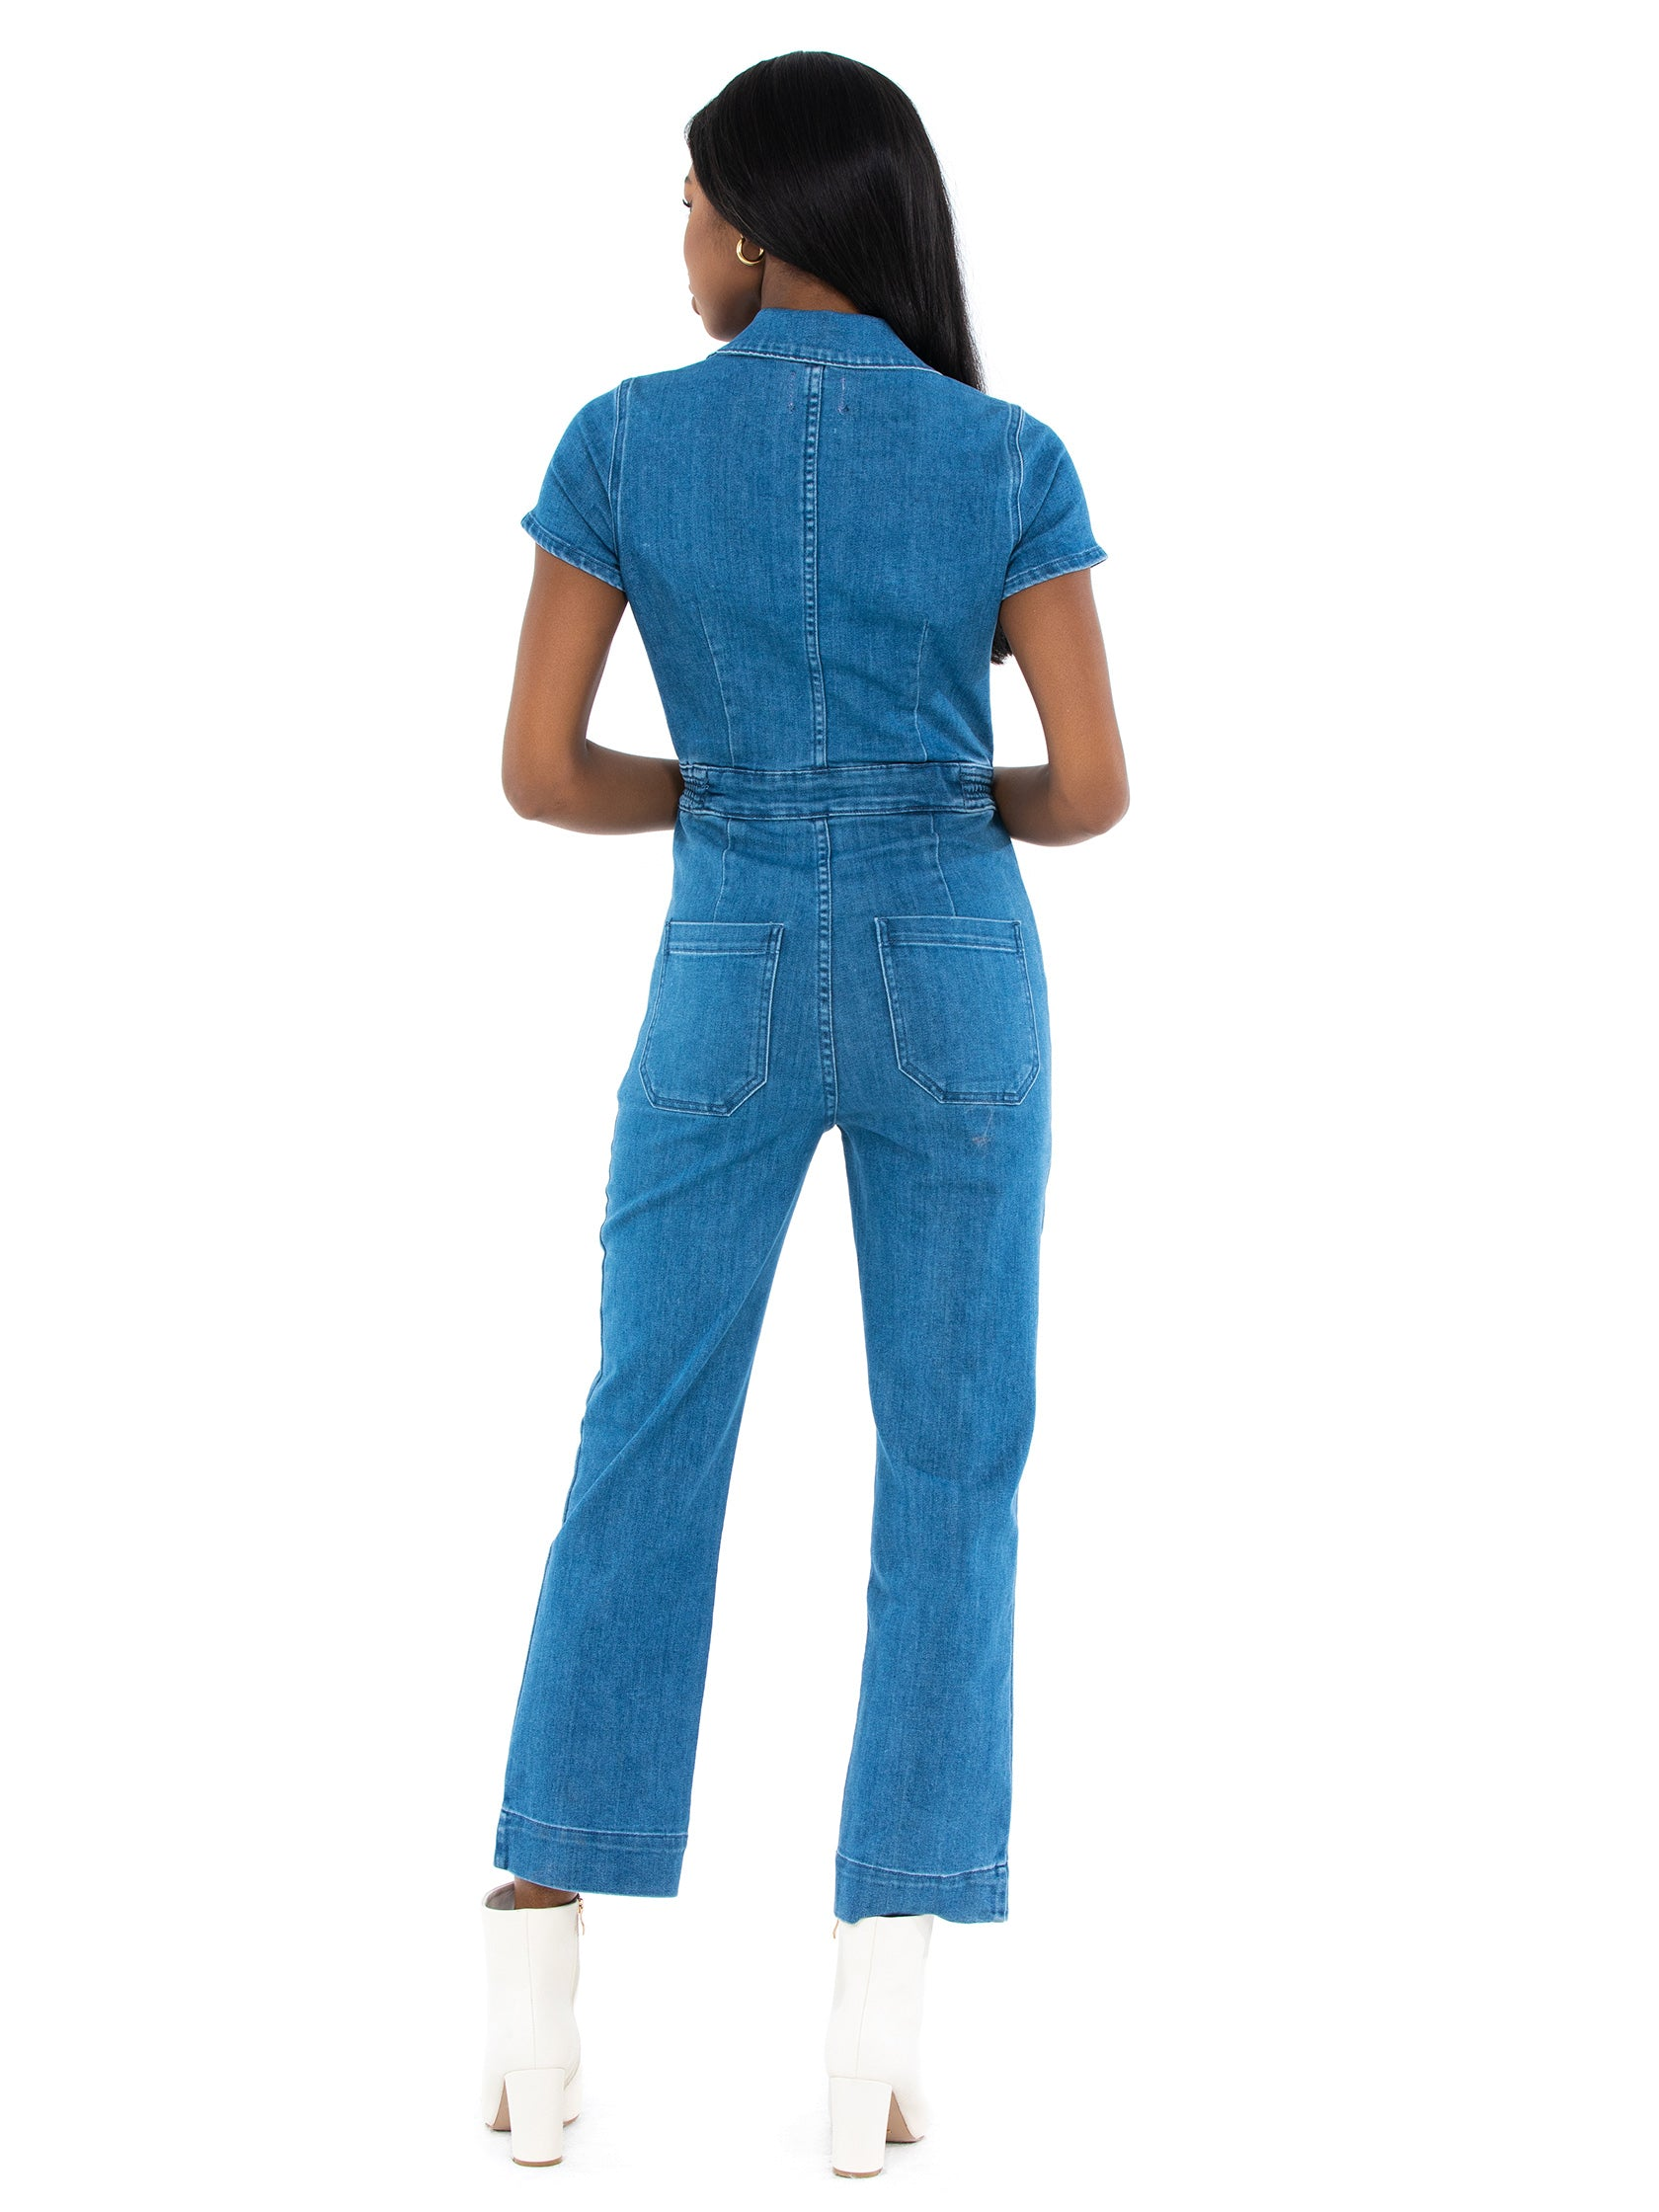 Women wearing a jumpsuit rental from Show Me Your Mumu called Emery Jumpsuit